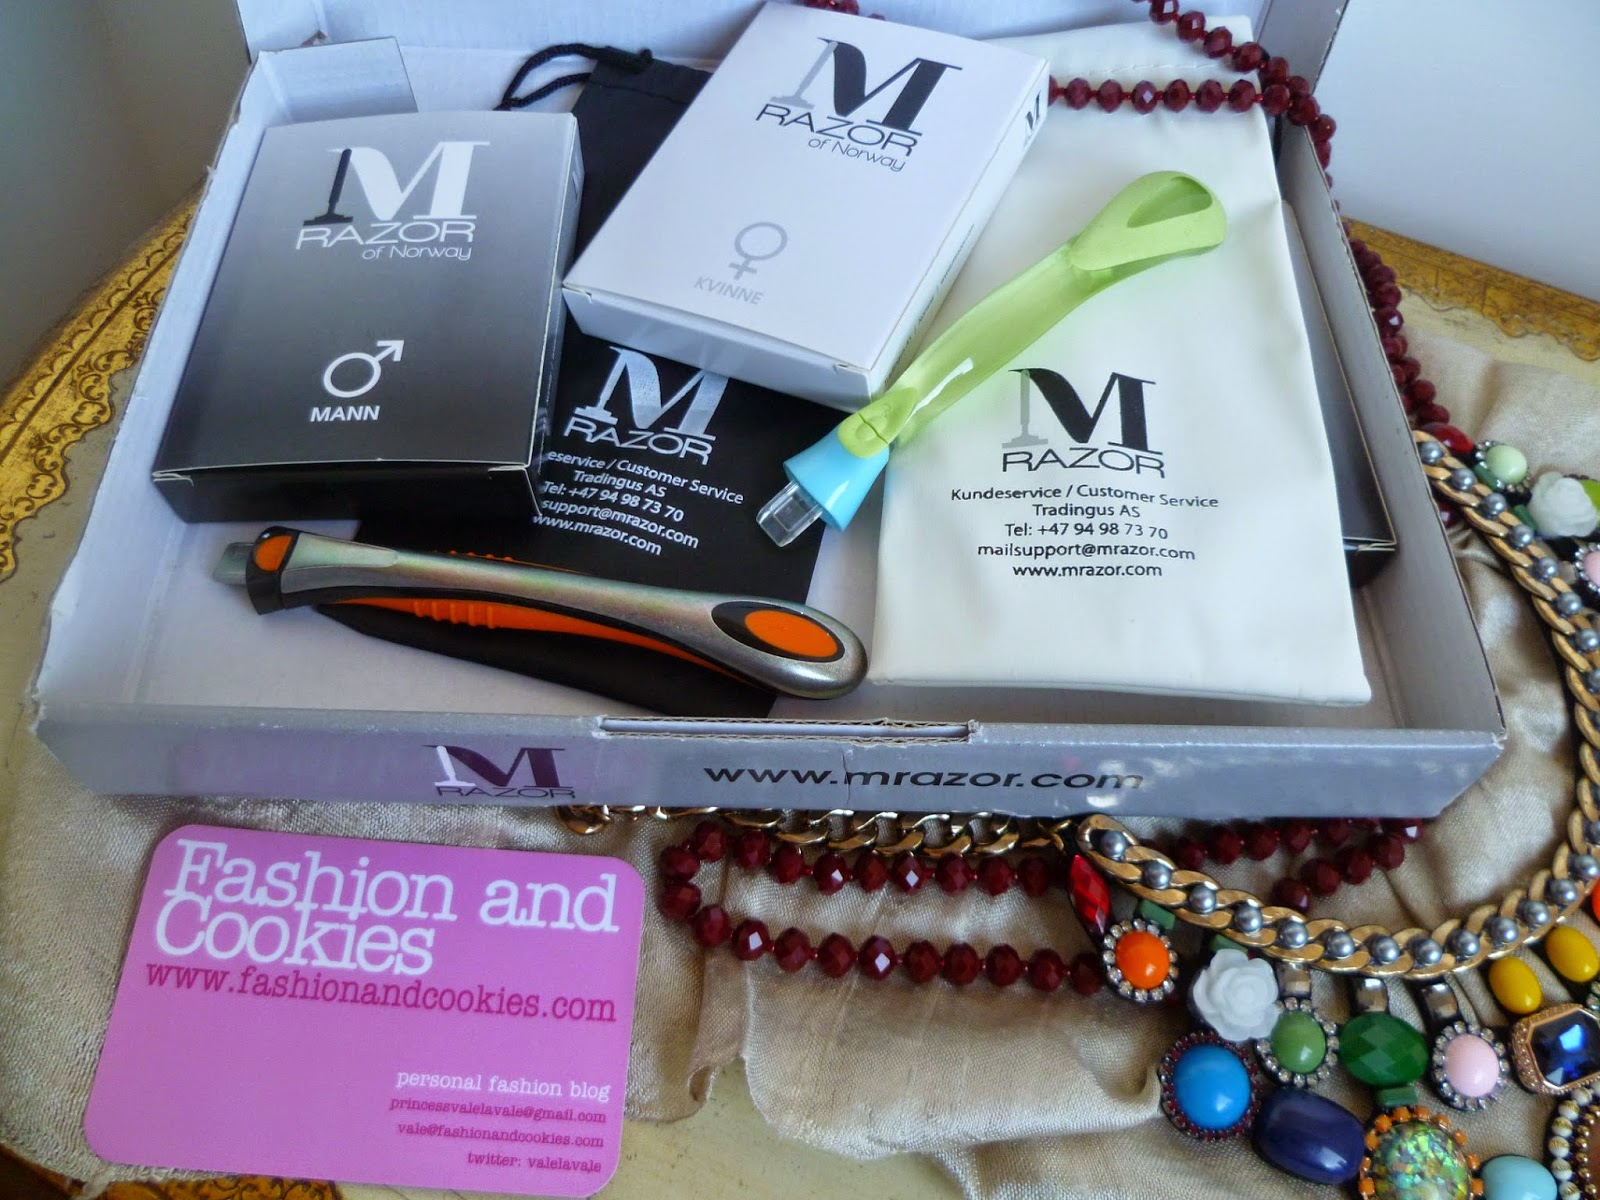 Mrazor of Norway review, affordable razors, Fashion and Cookies, fashion blogger